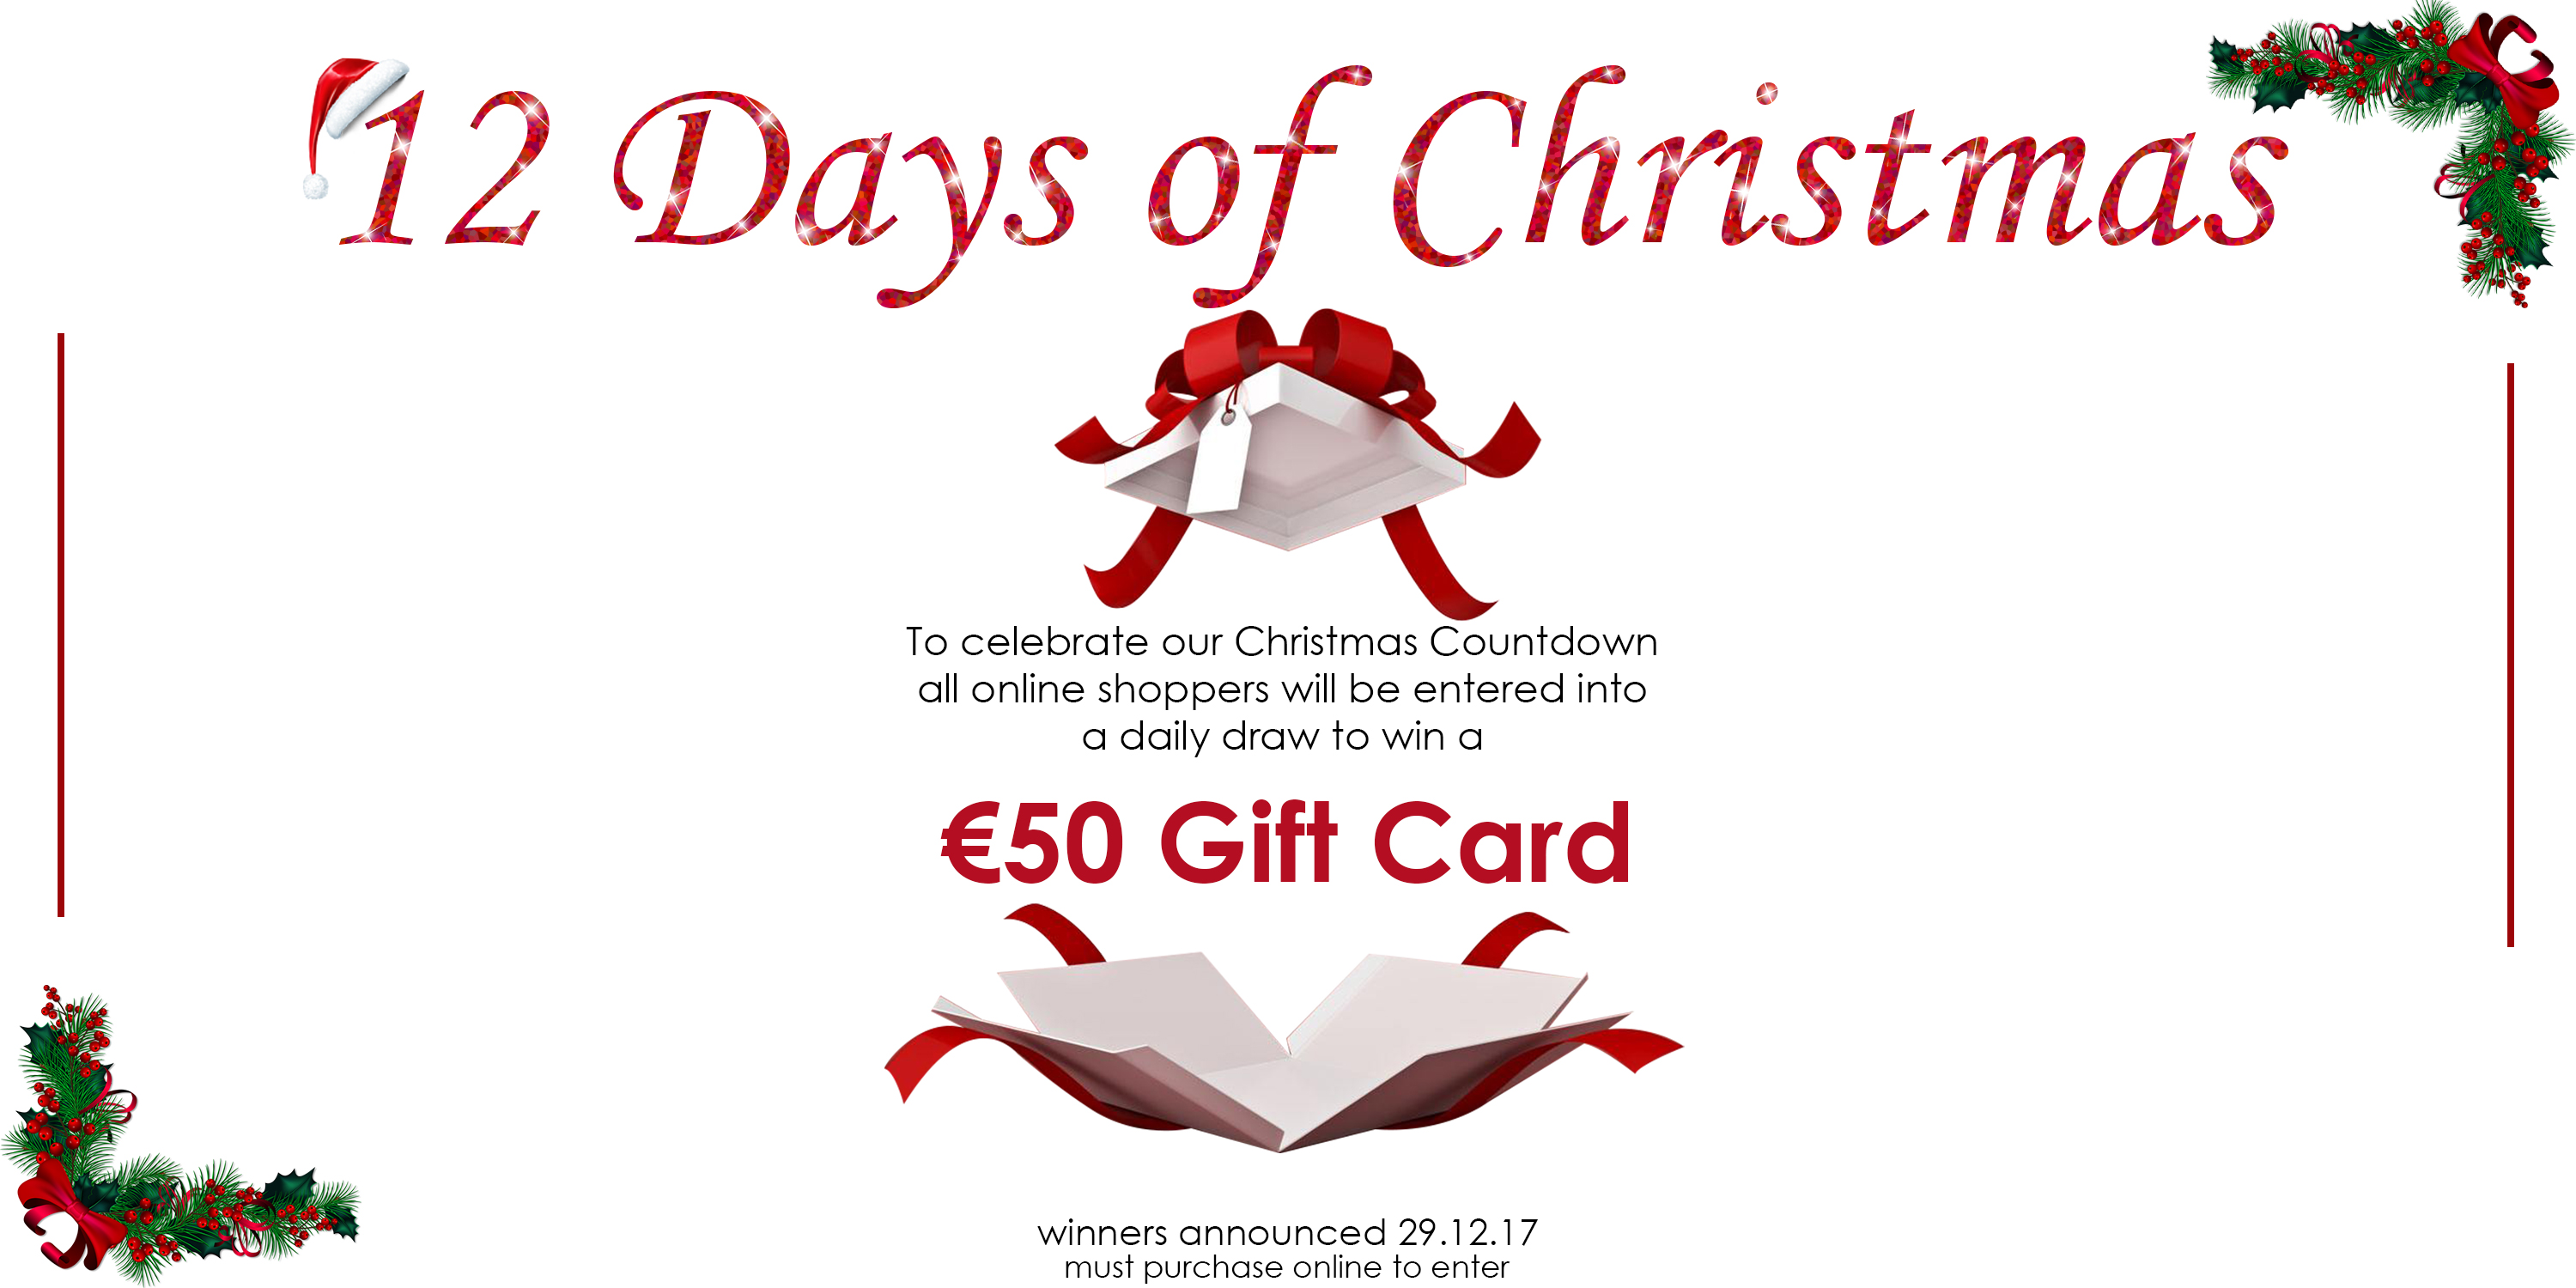 12 Days of Christmas - win a €50 Gift Card